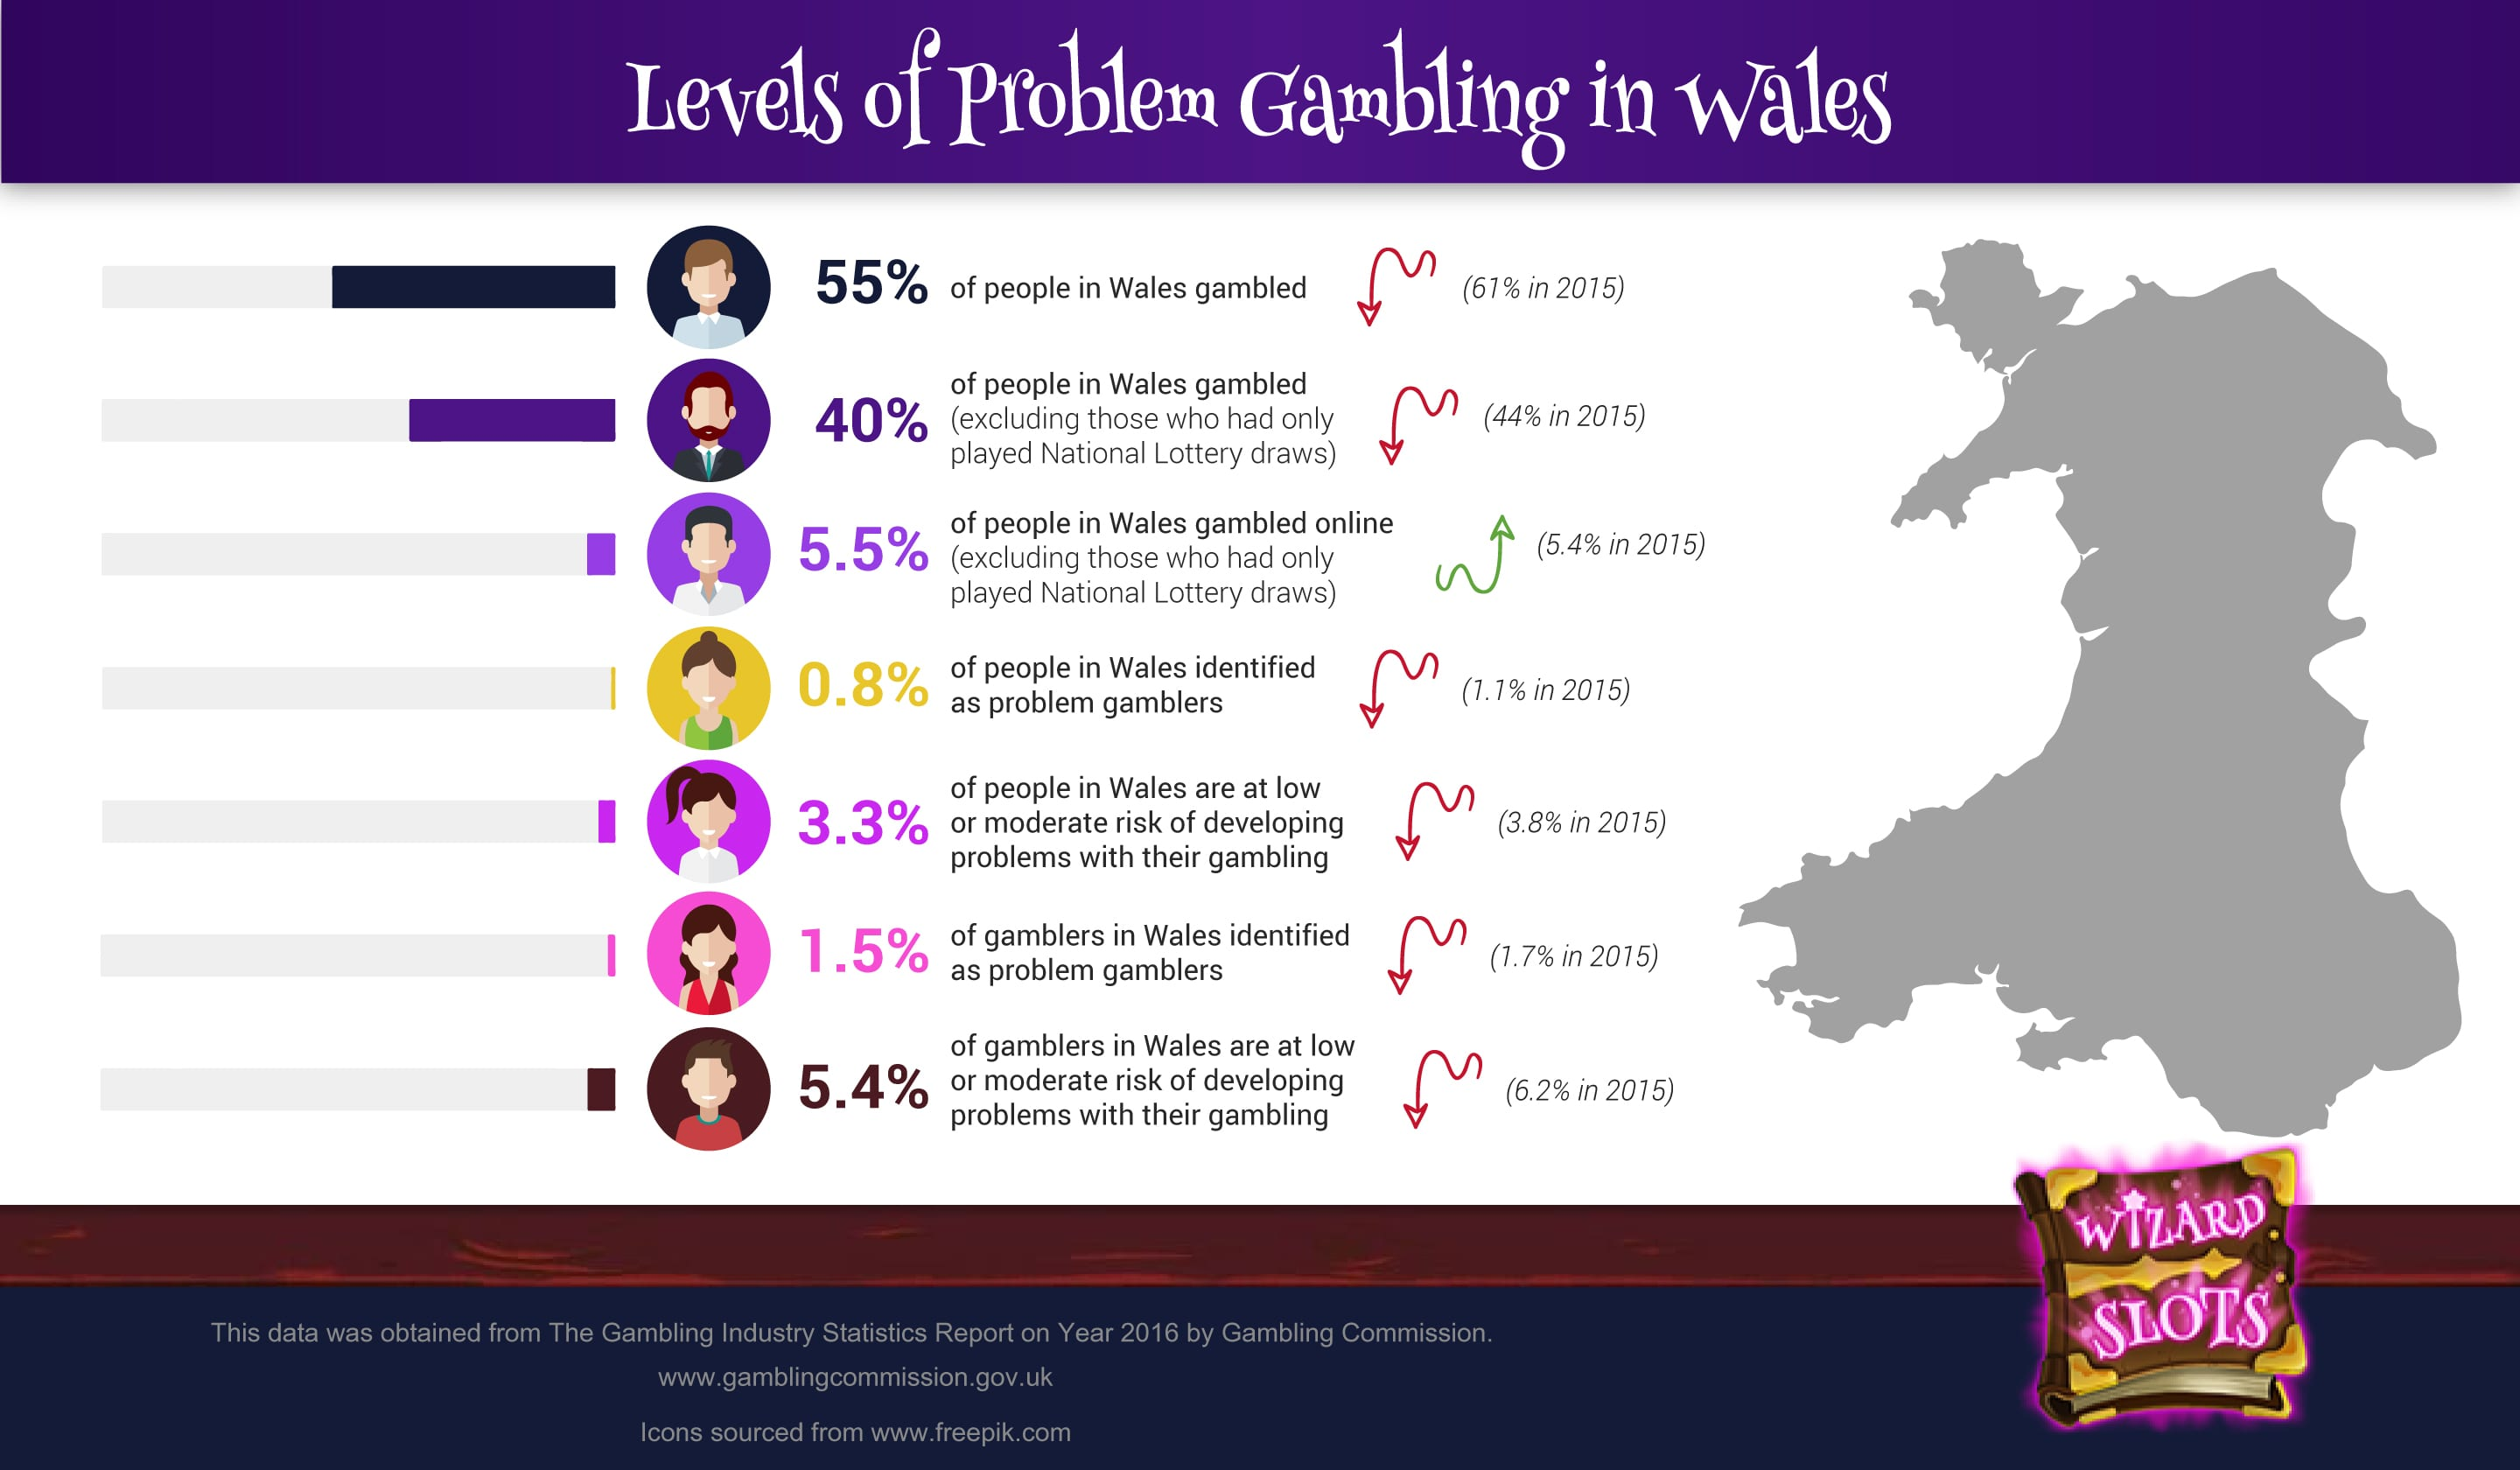 An infographic on the levels of problem gambling in Wales